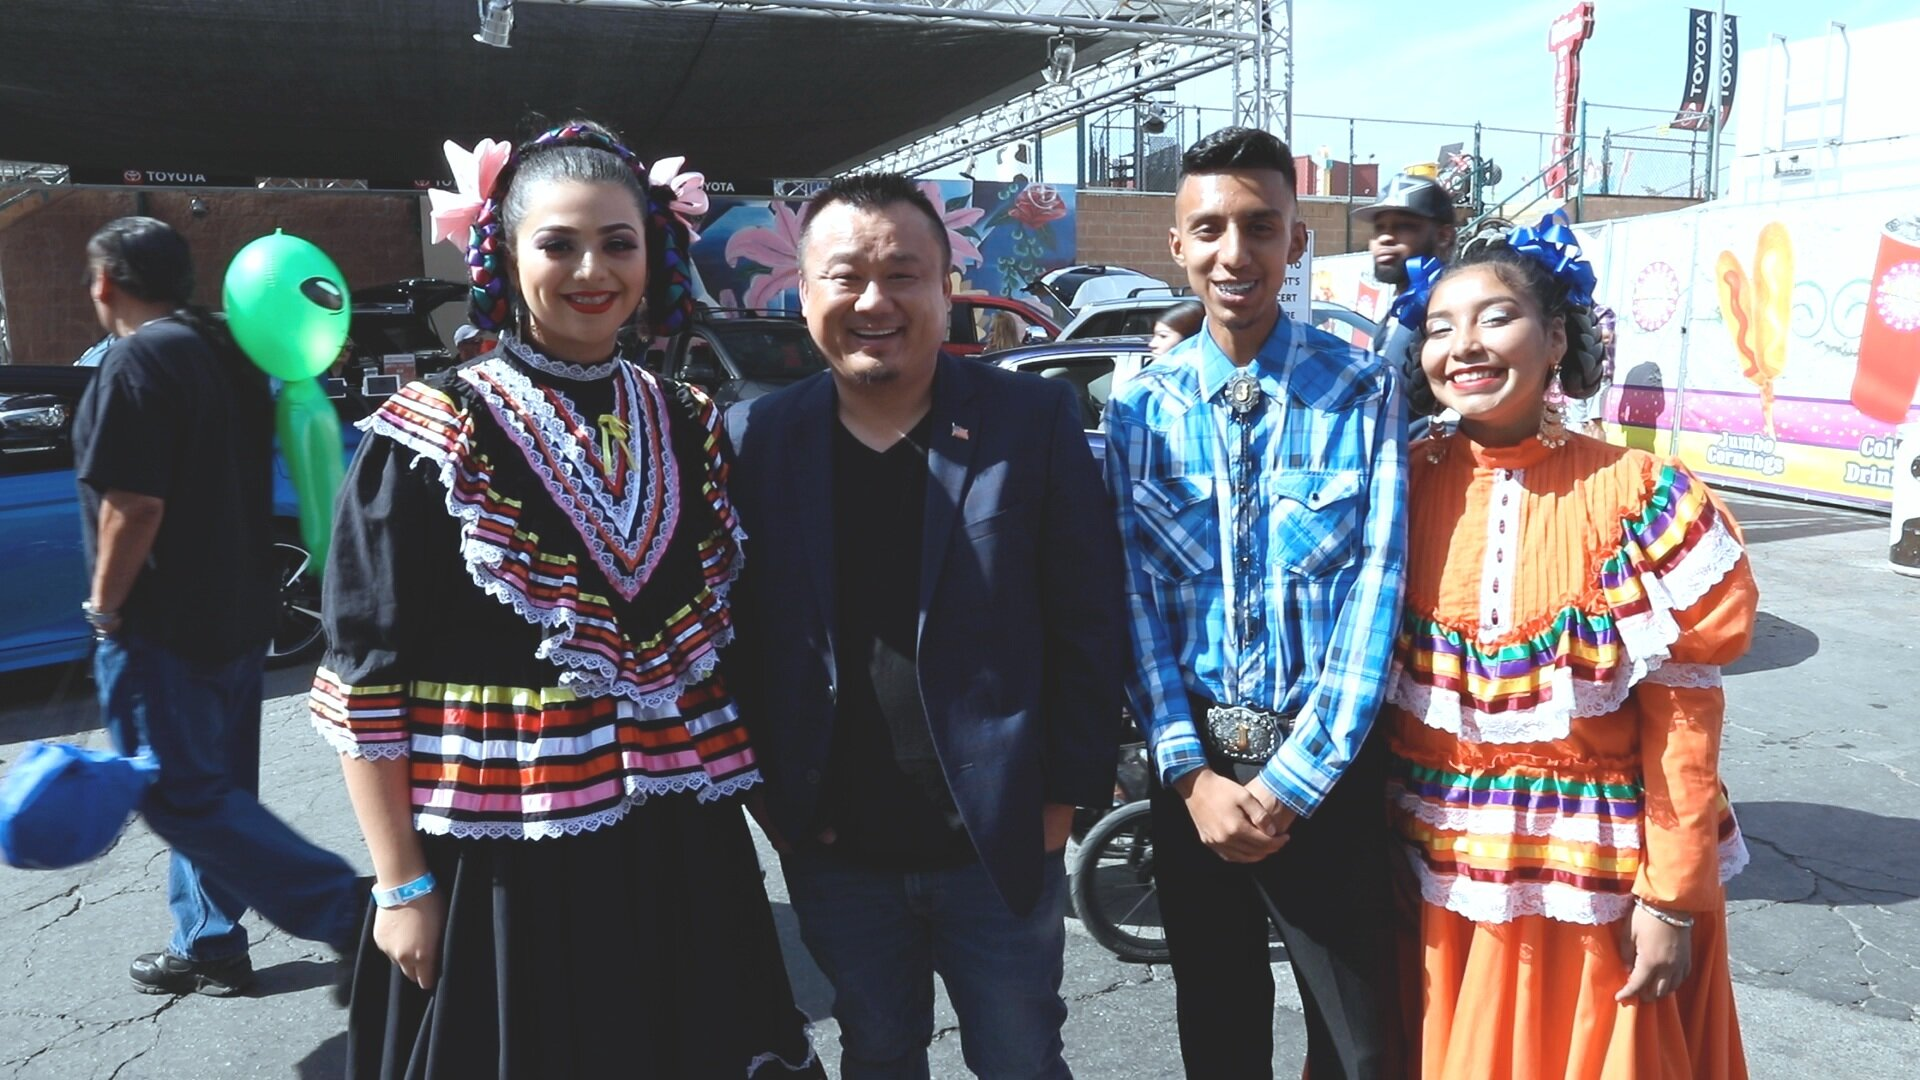 Bobby_Bliatout_folklorico_191011-1_BY7A7135.png